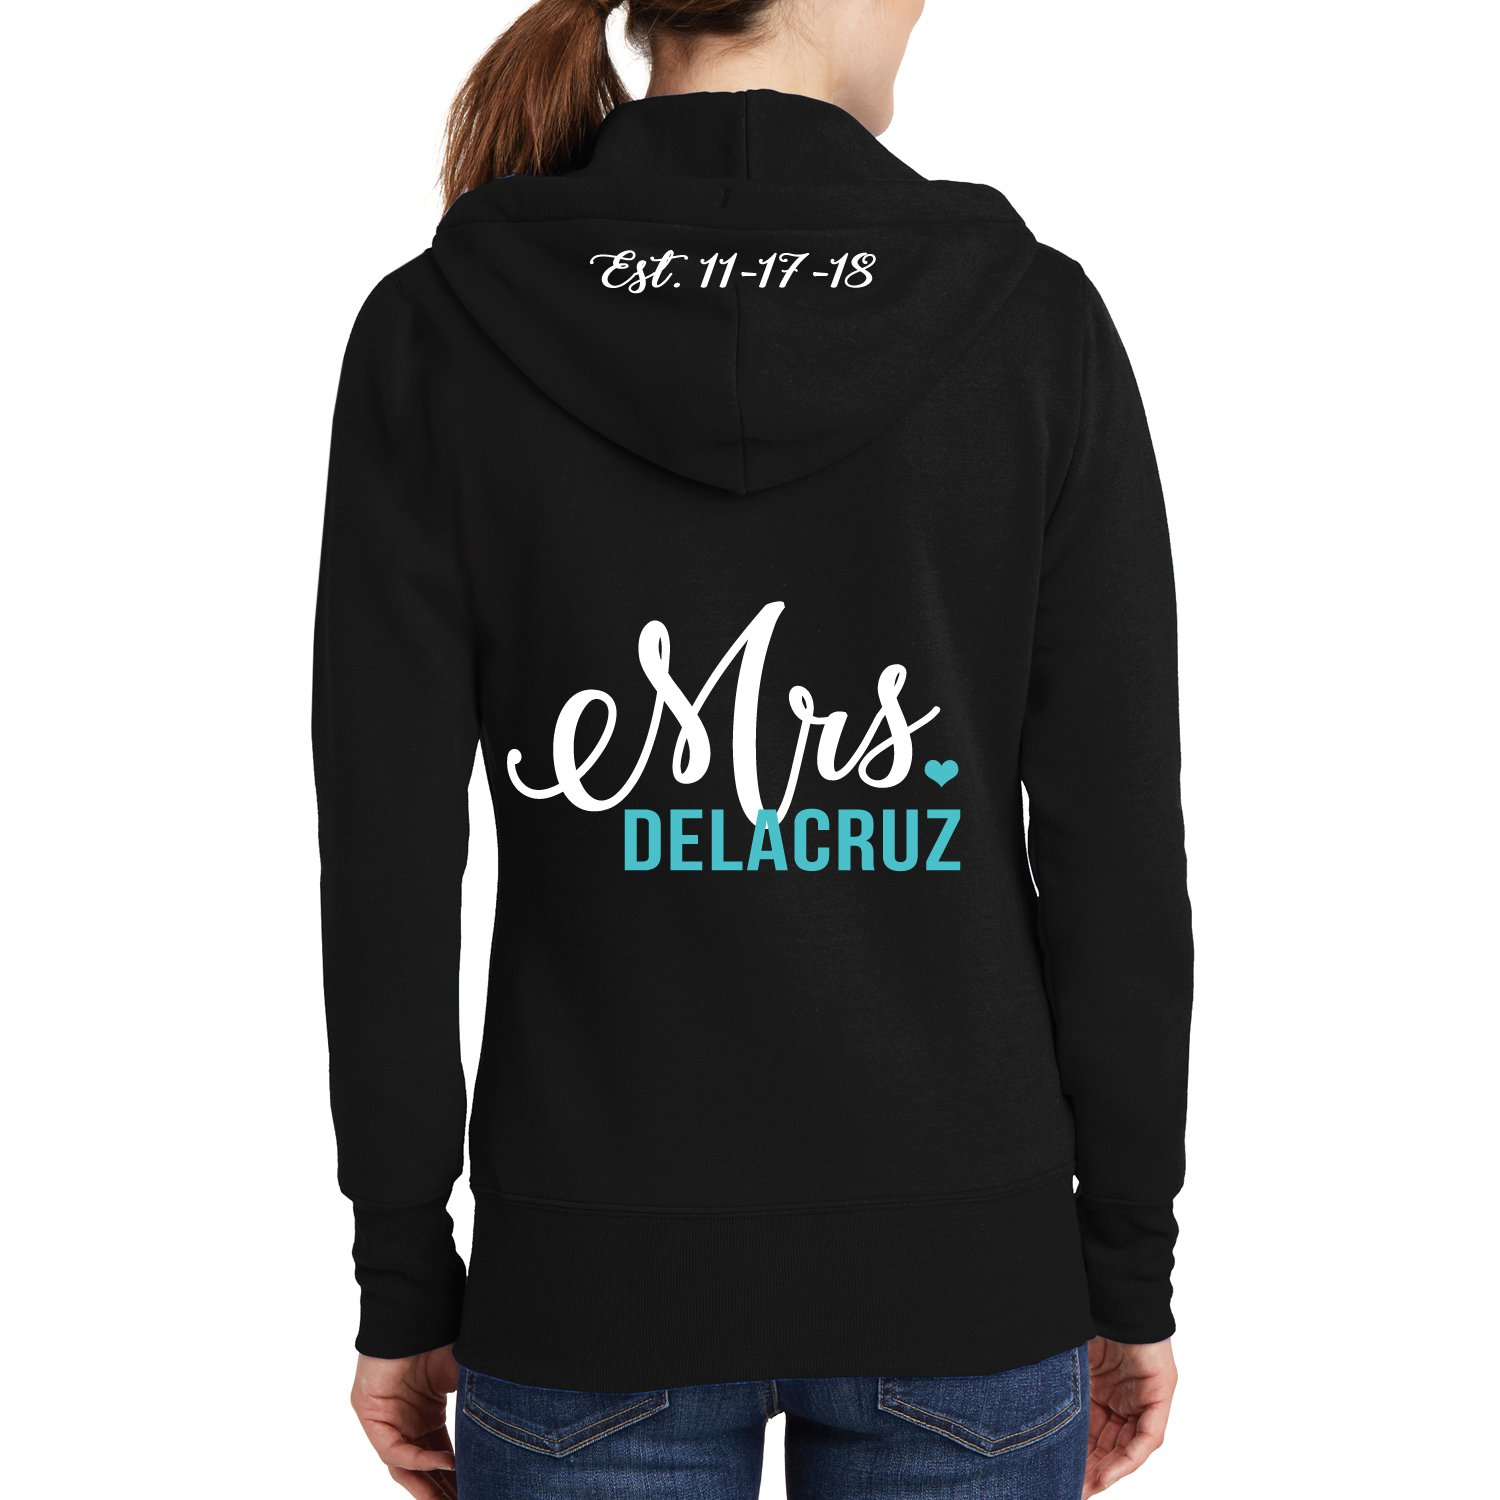 Classy Bride Personalized Mrs. Hoodie With EST. Date